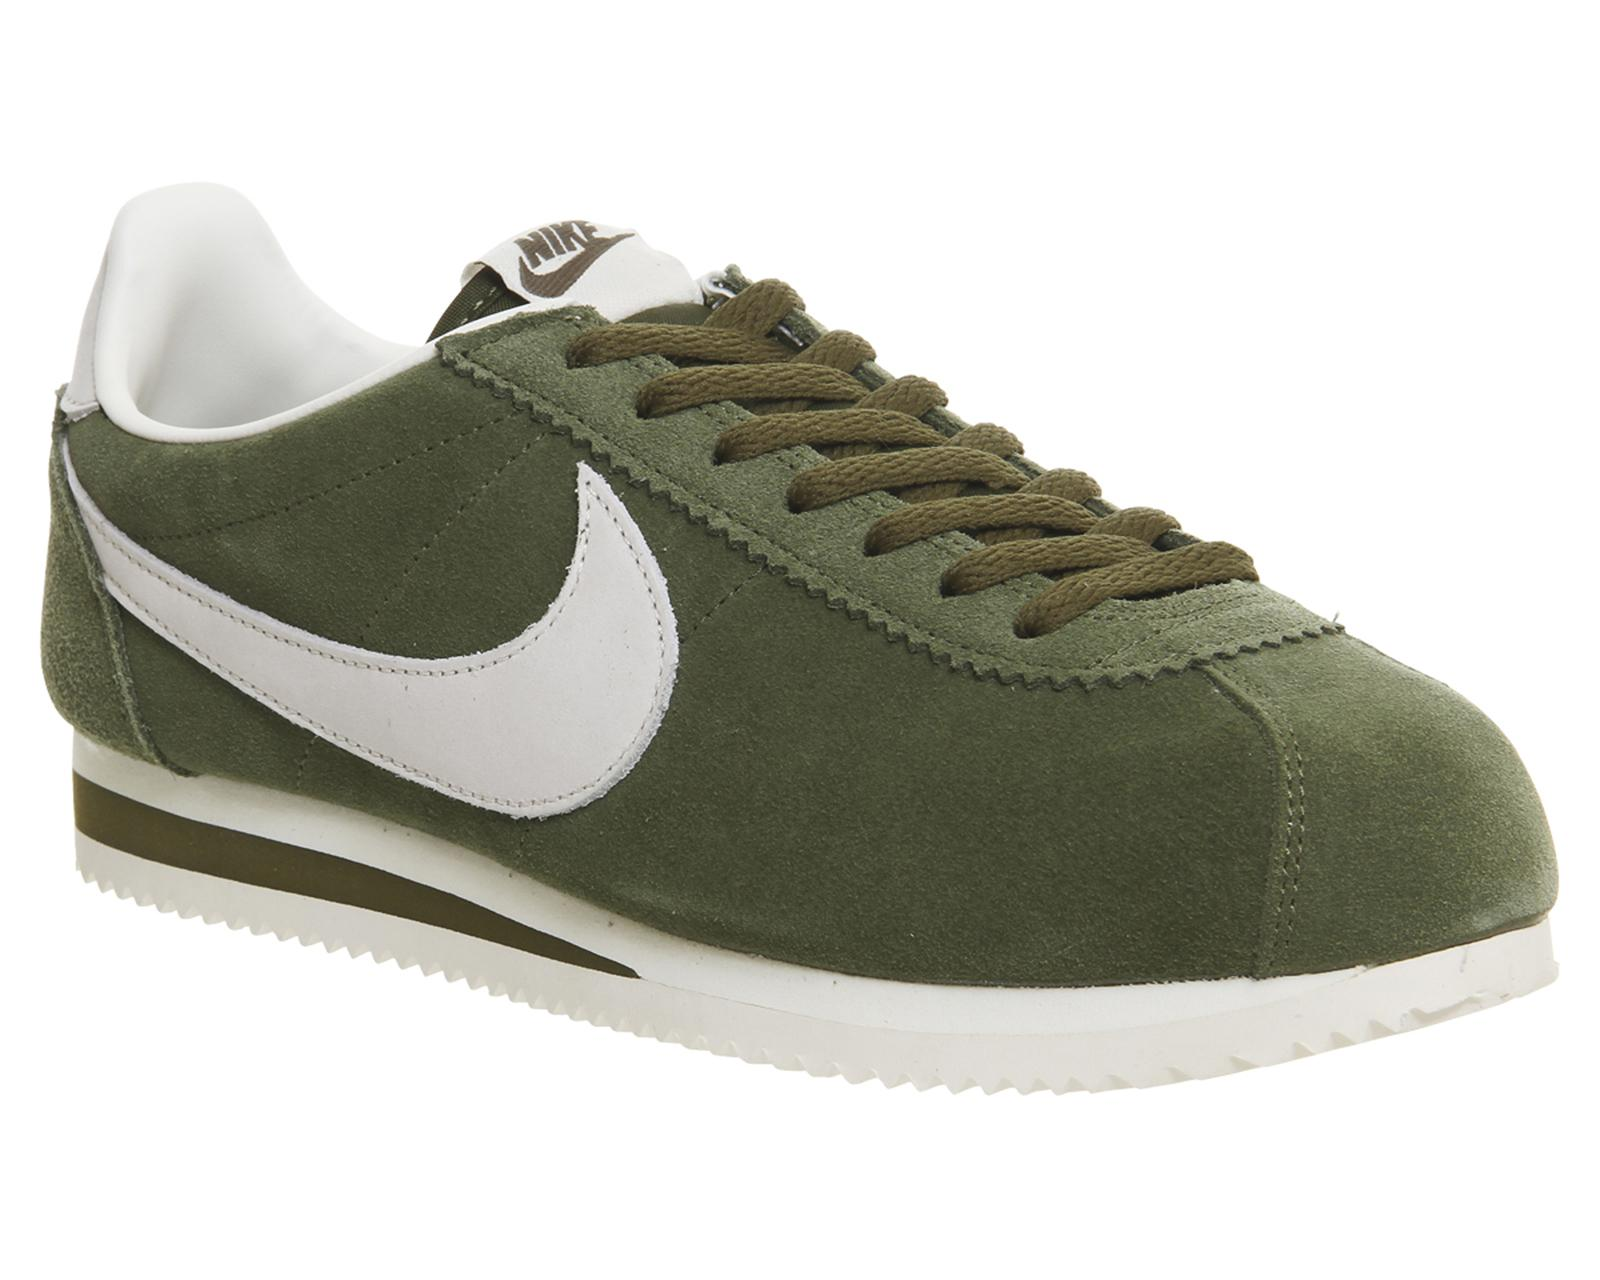 5977f7c69 Lyst - Nike Classic Cortez Og Trainers in Green